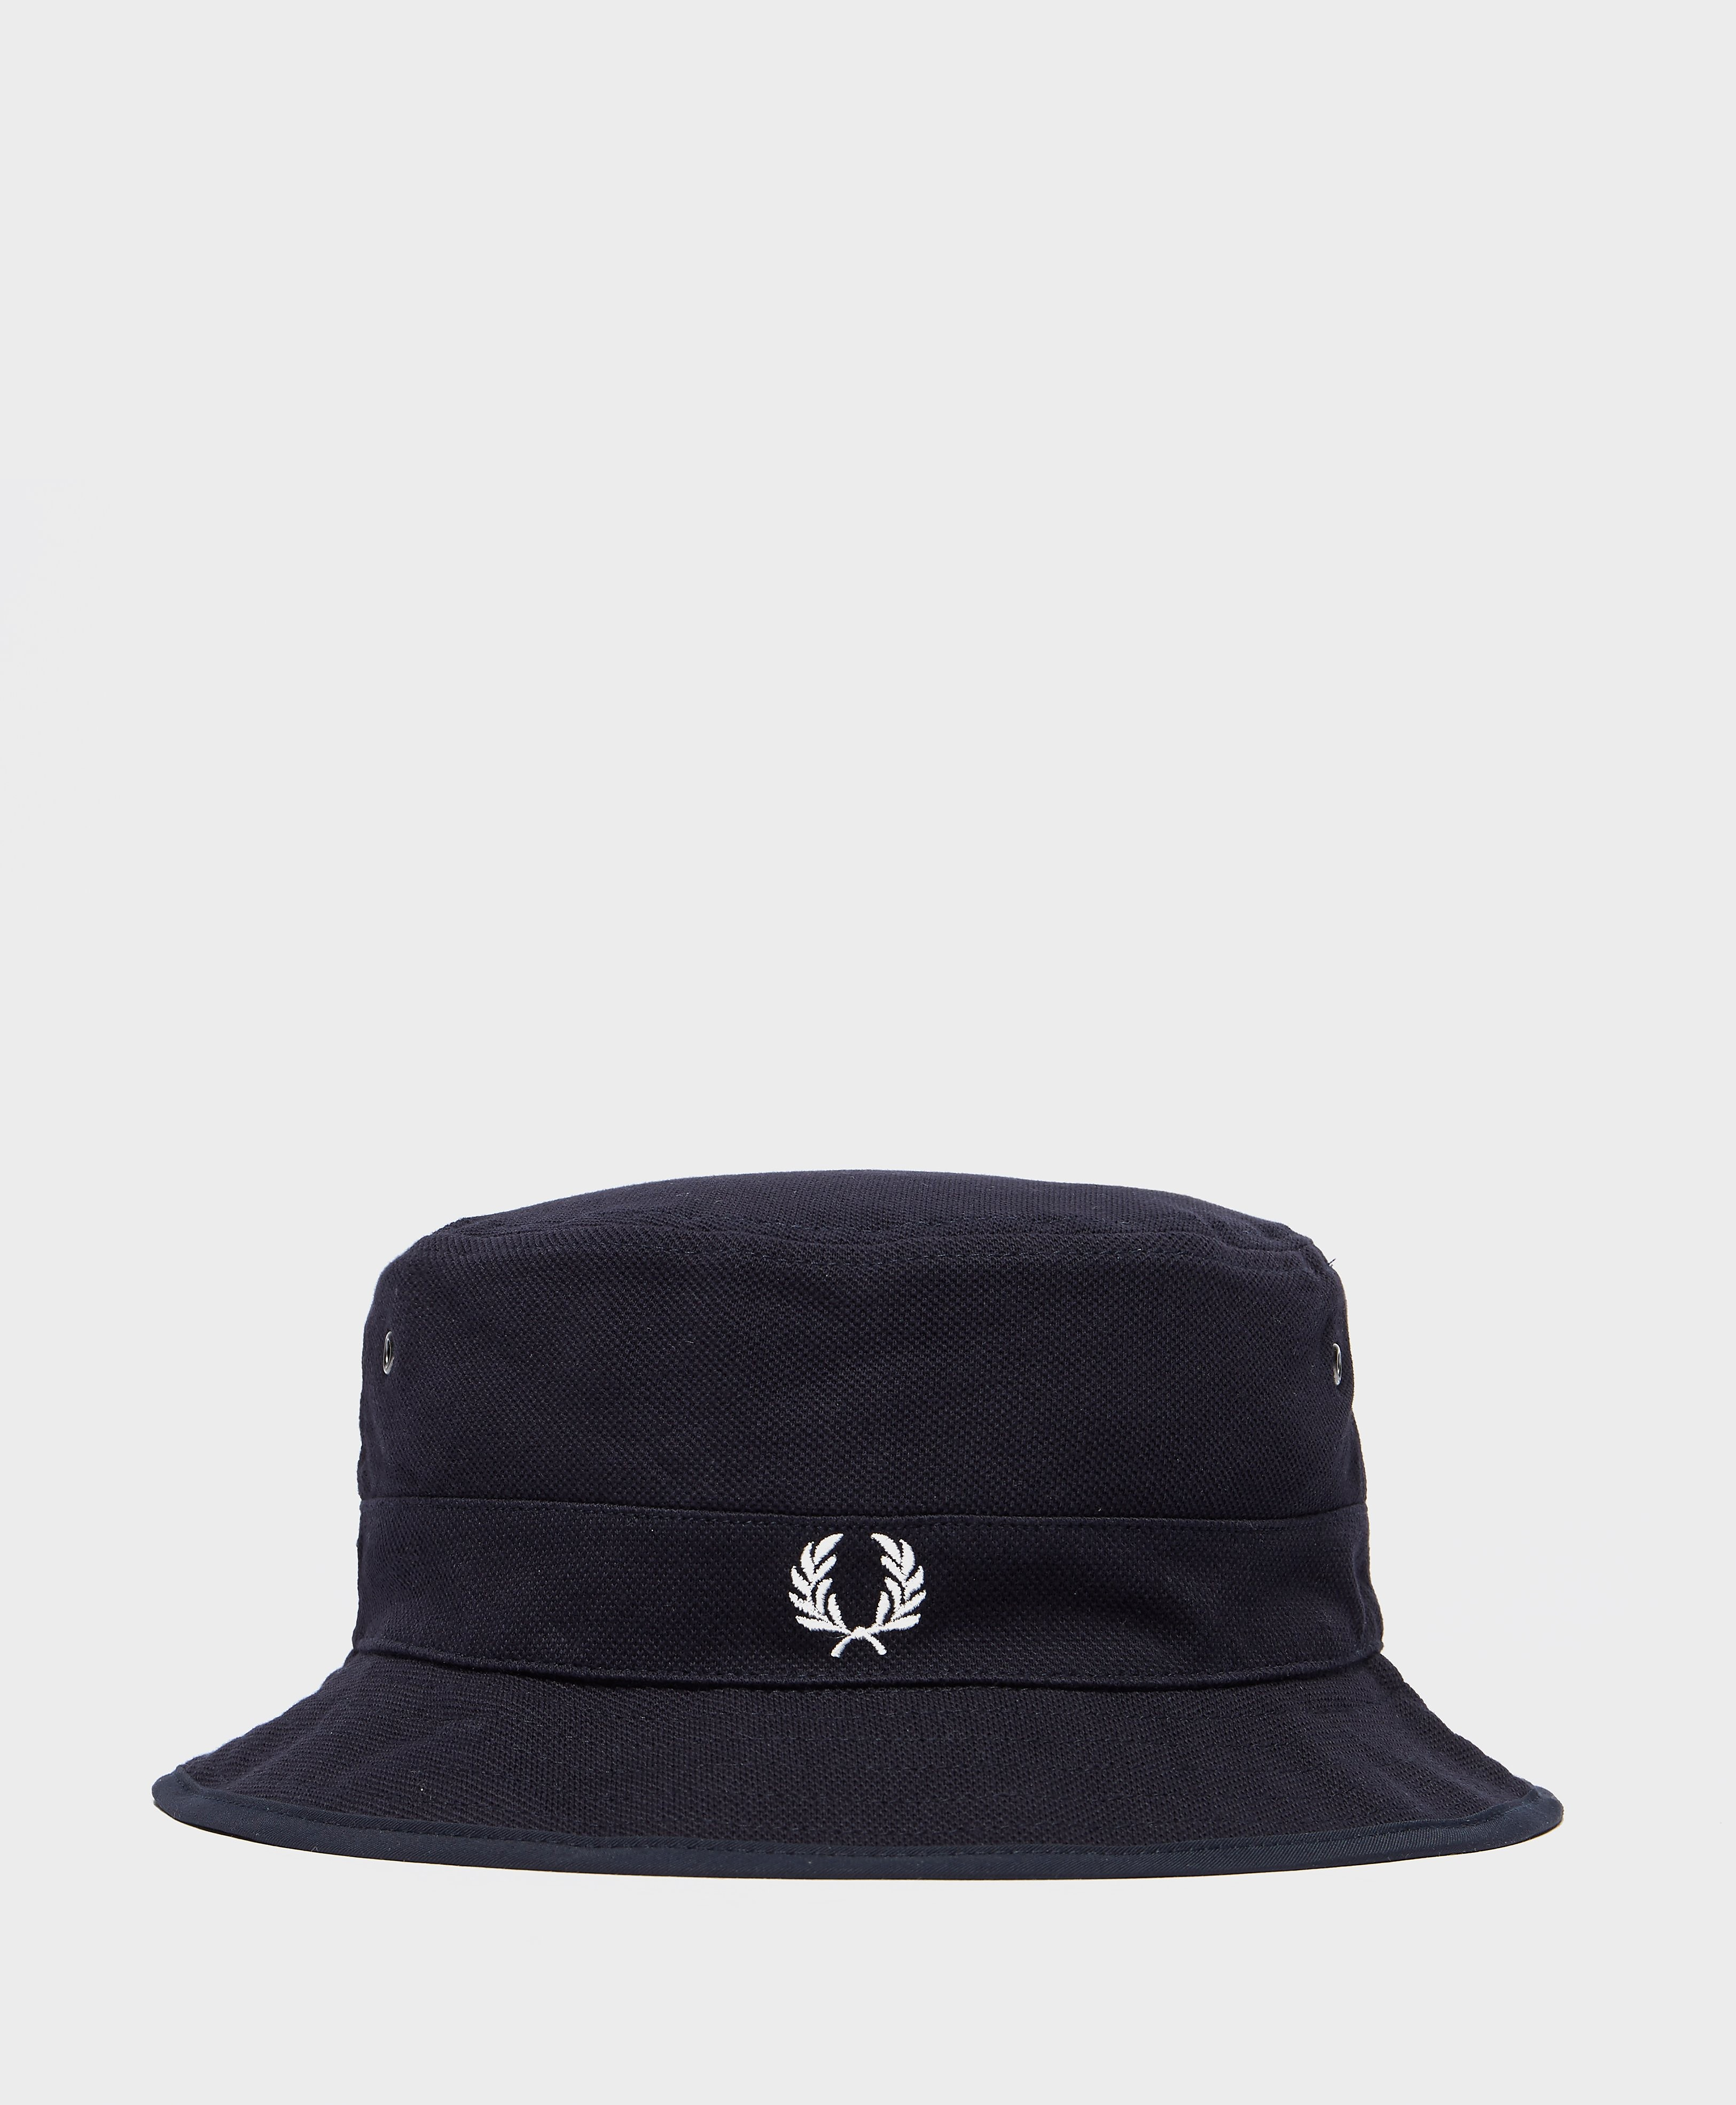 Fred Perry Pique Reversible Bucket Hat